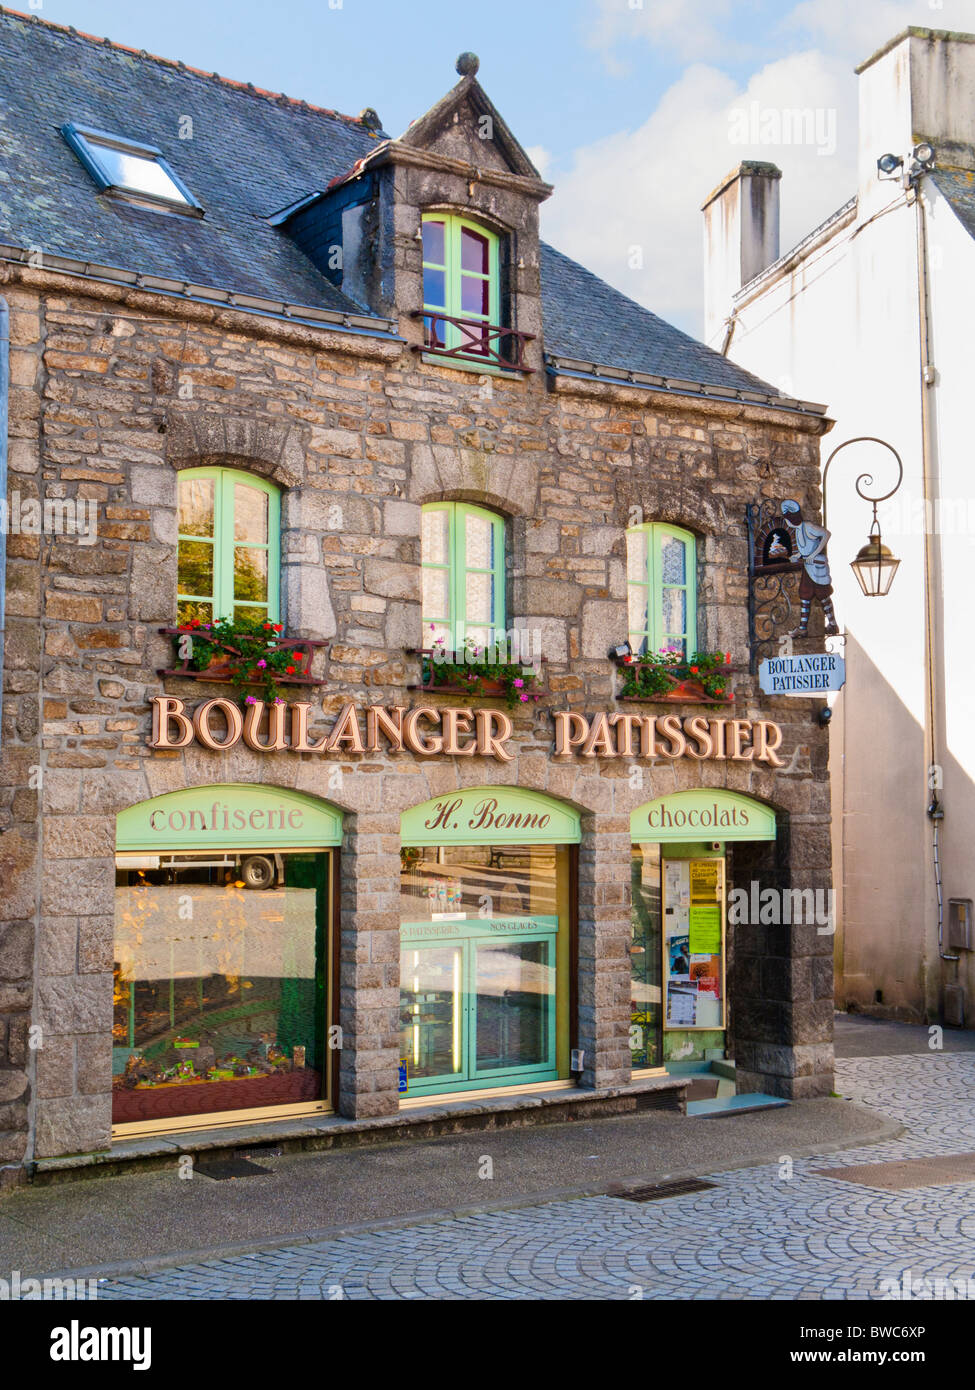 Old fashioned Boulangerie Patisserie shop in France Europe - Stock Image